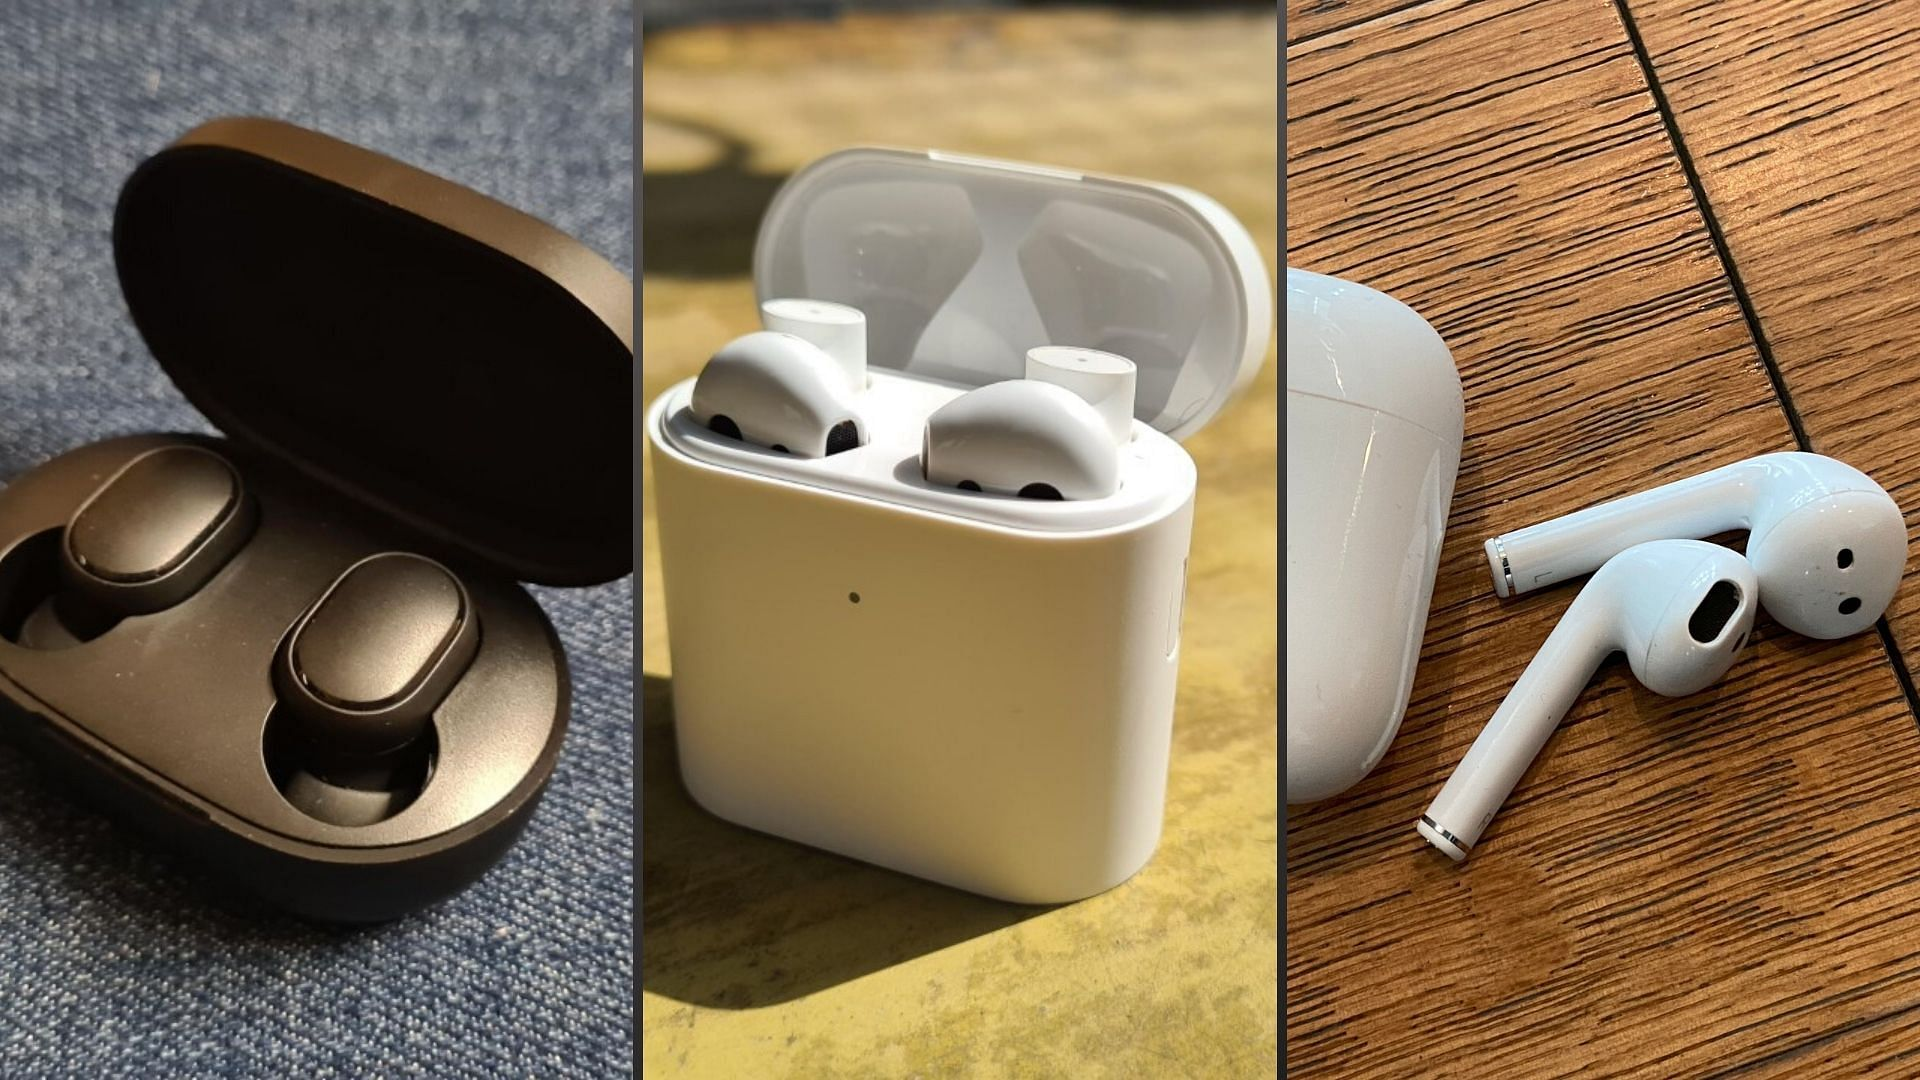 Top 5 Wireless Earbuds You Can Buy